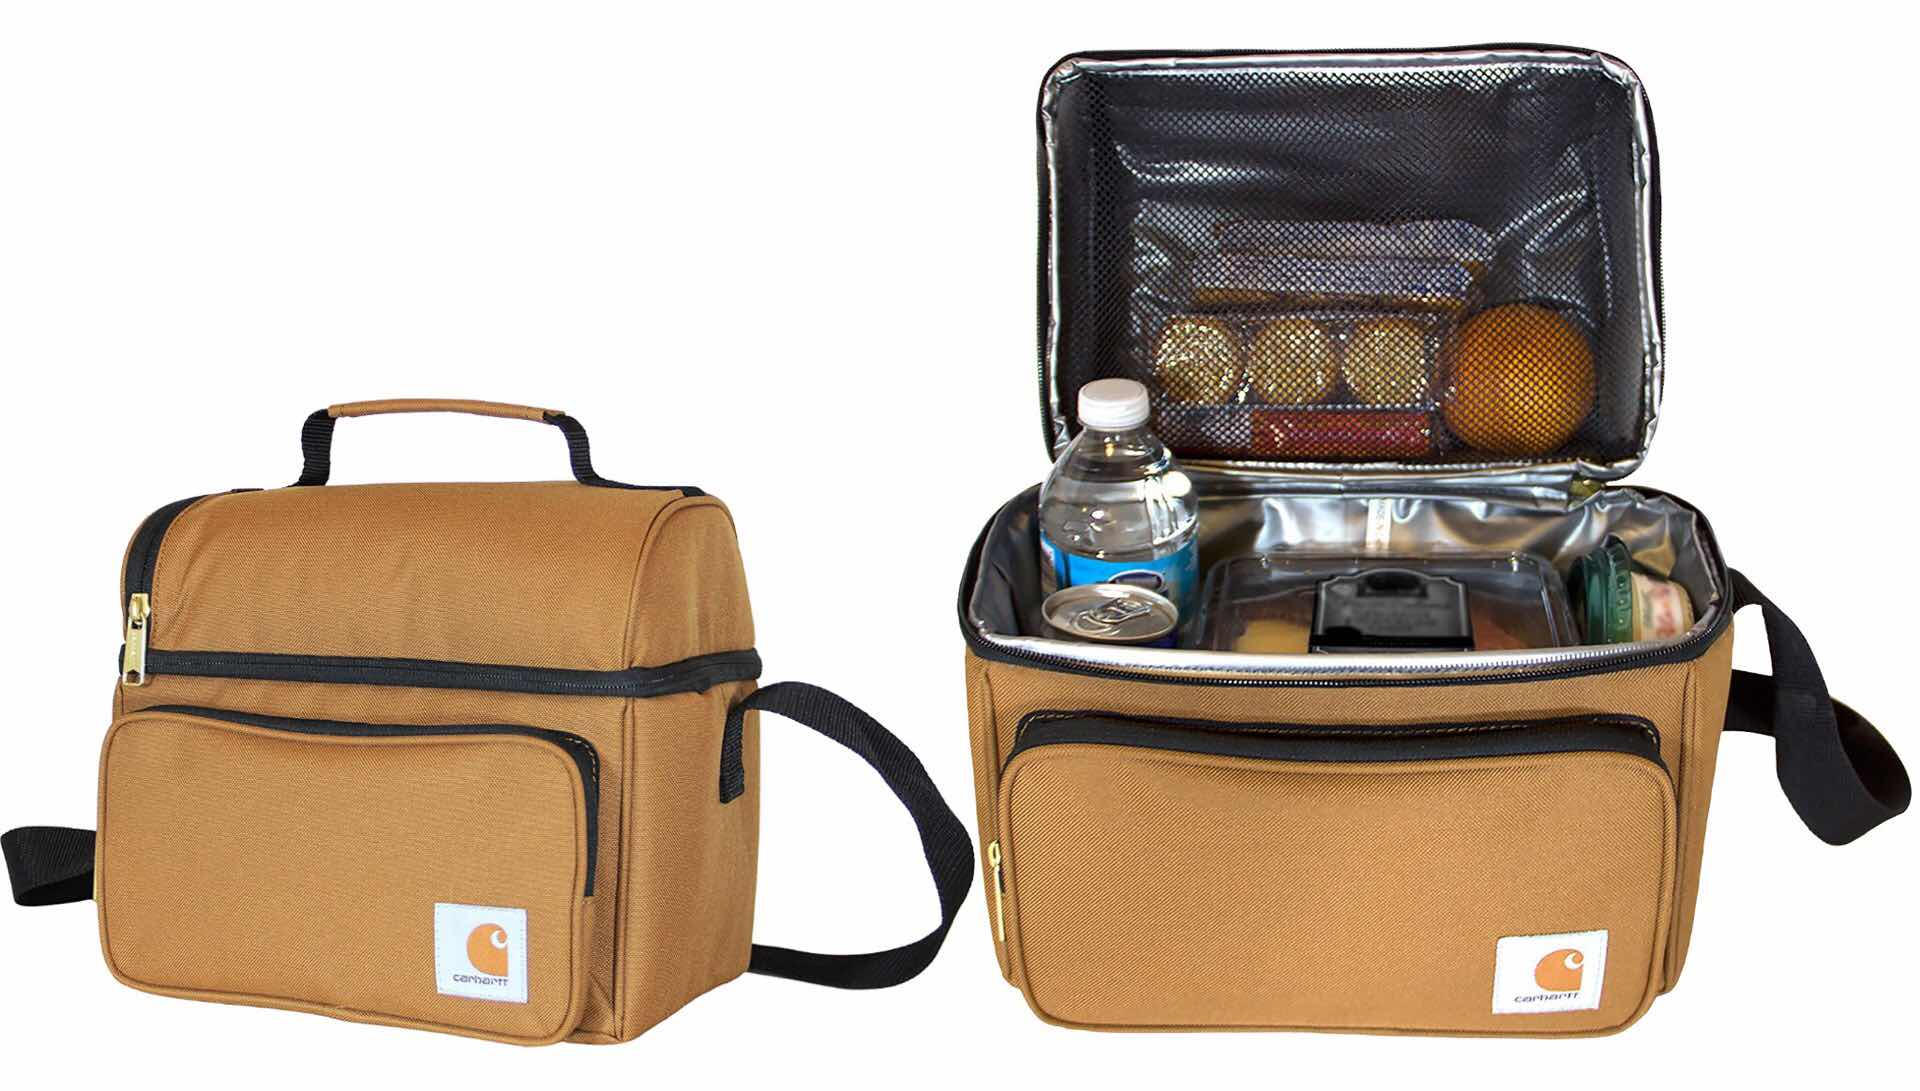 Carhartt lunch cooler